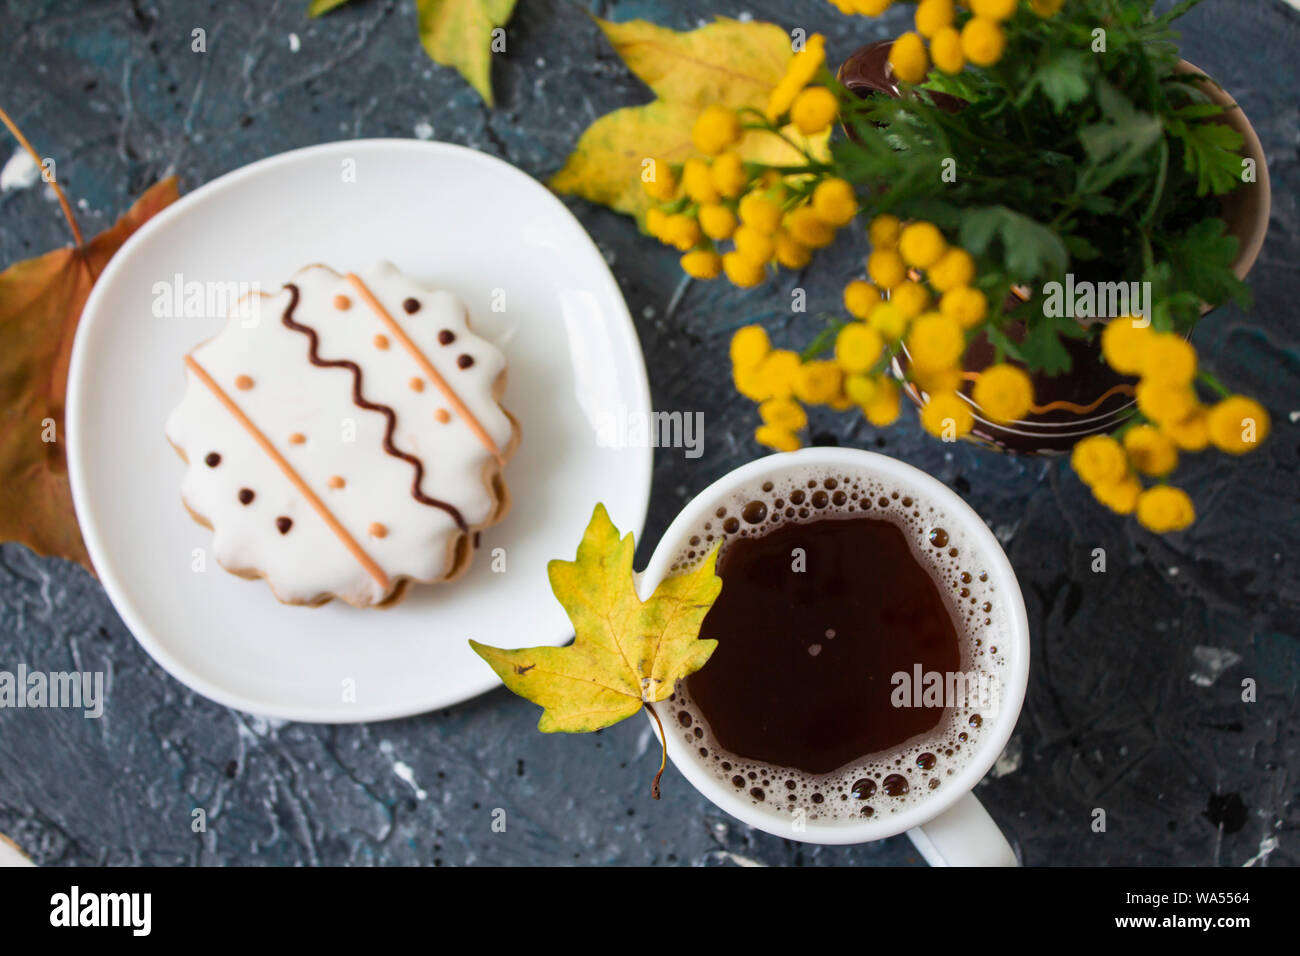 Tea green tea. Herbal tea. Mint leaf. Tea with apple flavor. Tea in a glass cup with apple blossoms and leaves dried tea sliced lime. herbs tea and Stock Photo